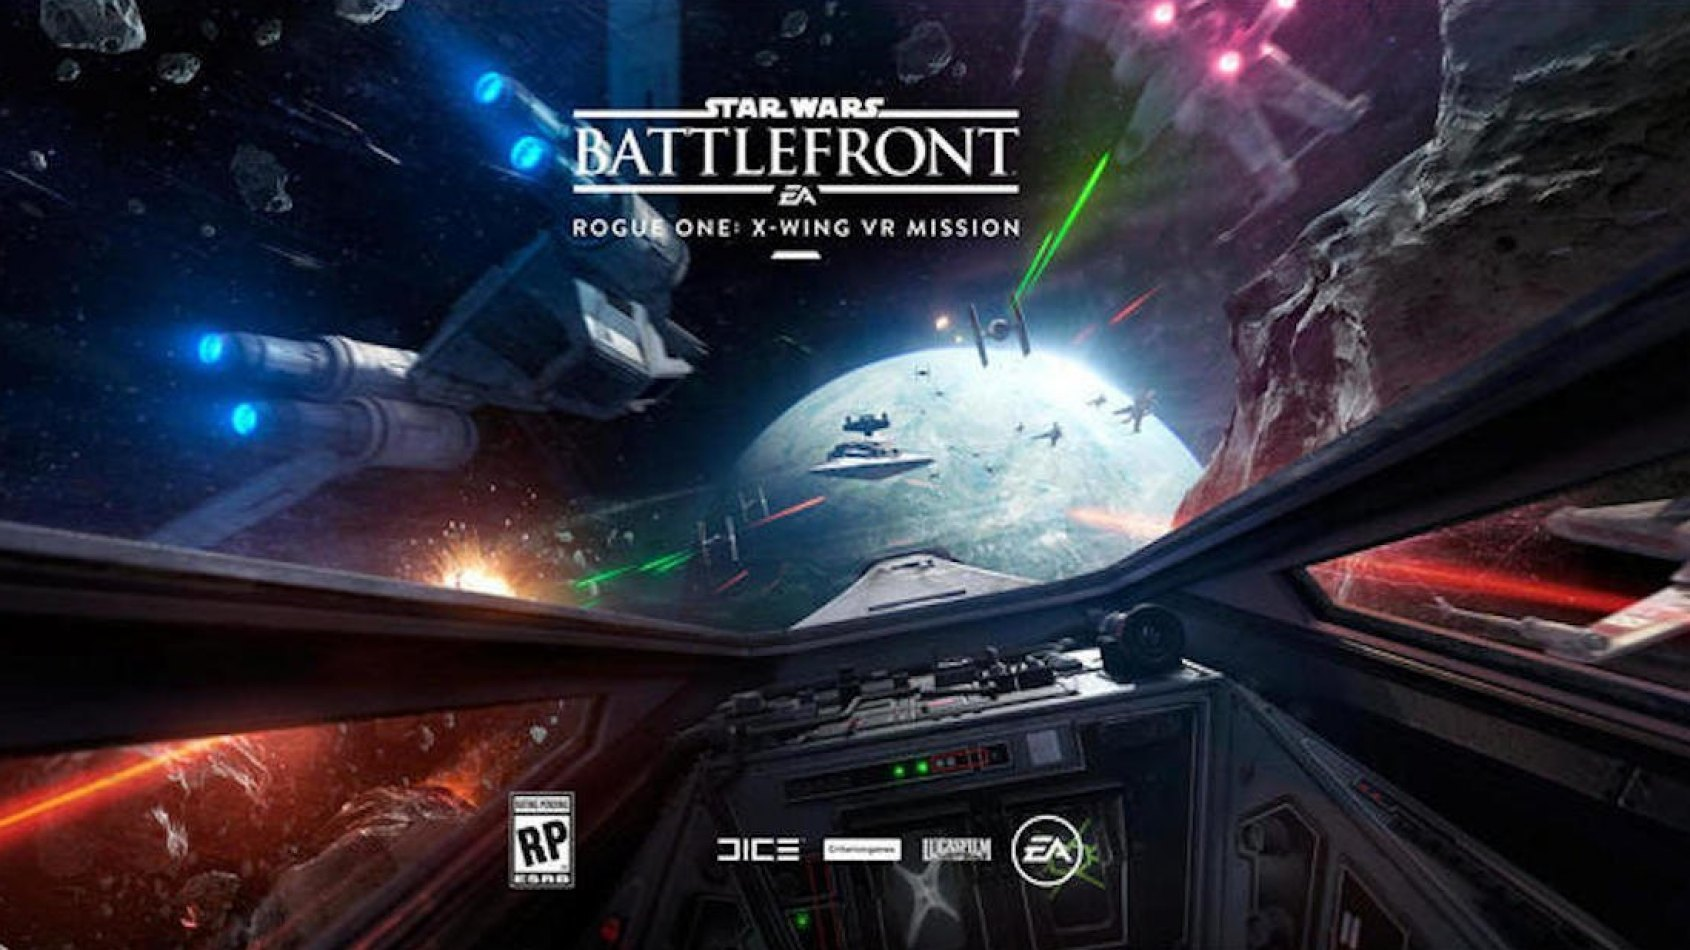 Battlefront Rogue One: X-Wing VR Mission est disponible!